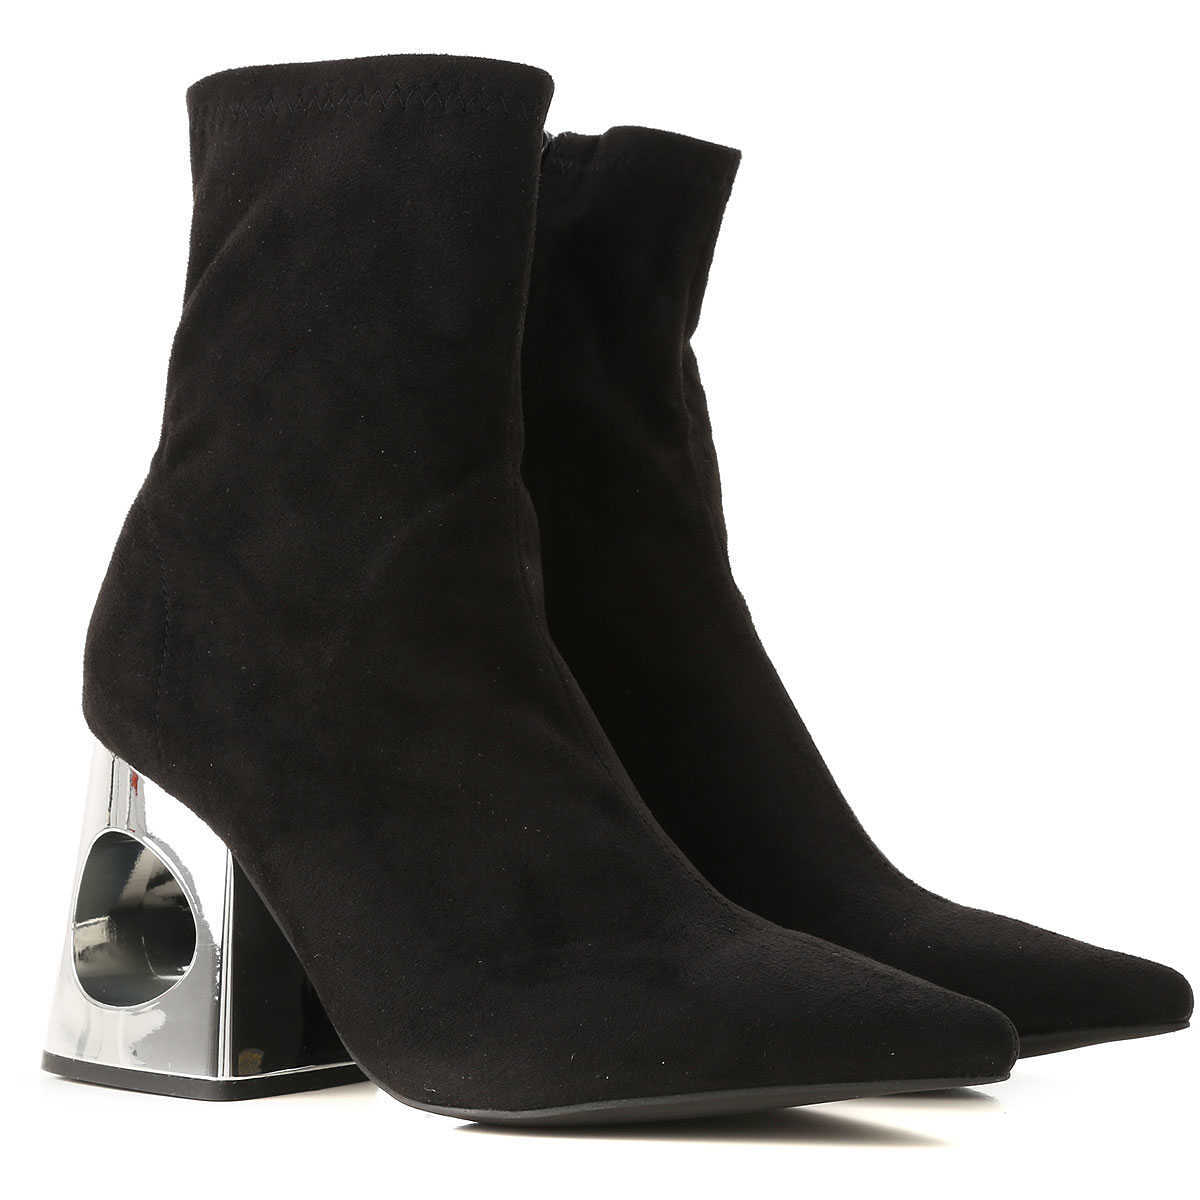 Jeffrey Campbell Boots for Women 4.5 7.5 Booties On Sale in Outlet UK - GOOFASH